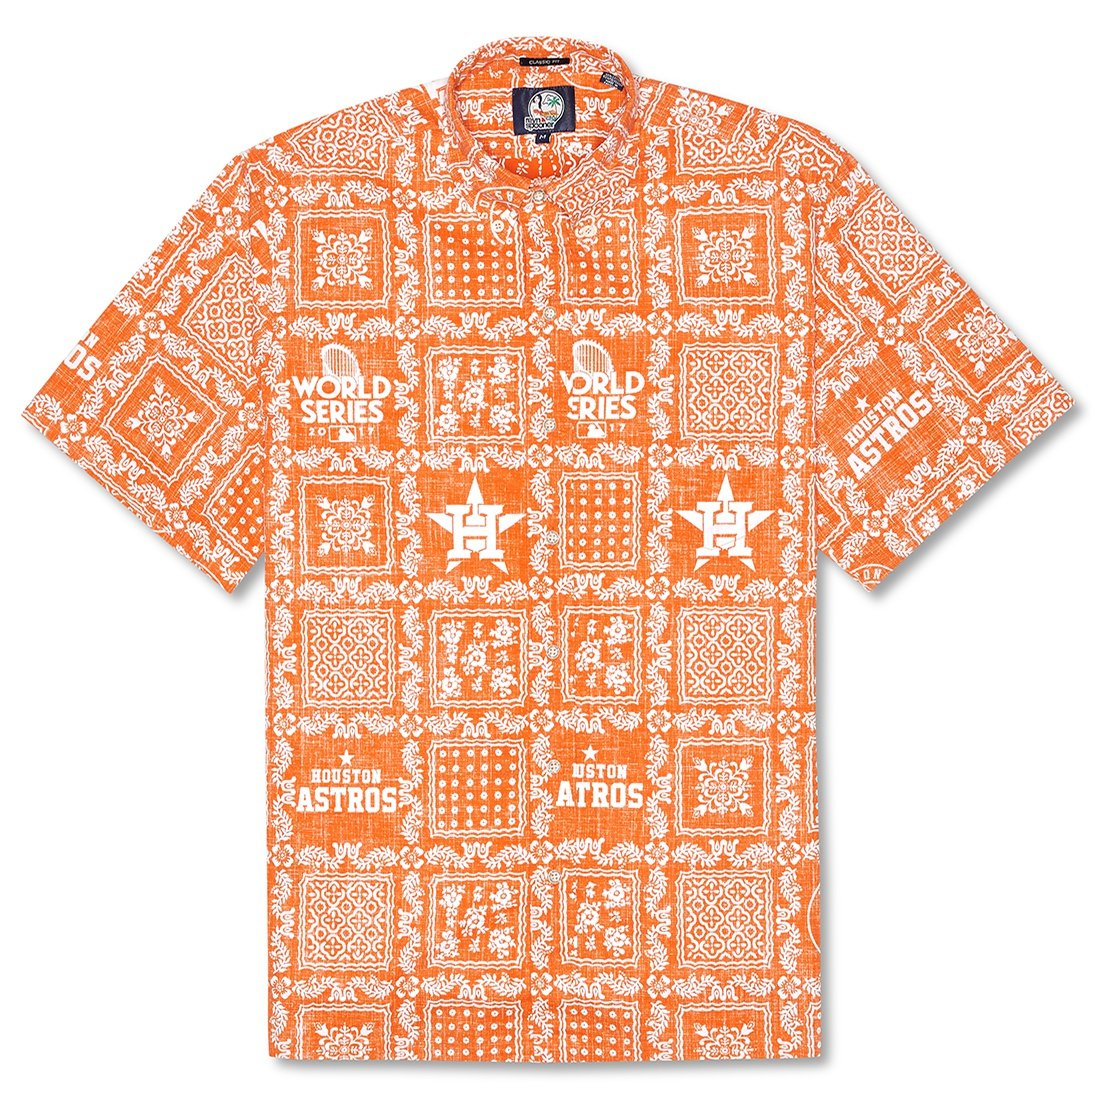 ASTROS LAHAINA / WEEKEND WASH CLASSIC FIT - Zoomed